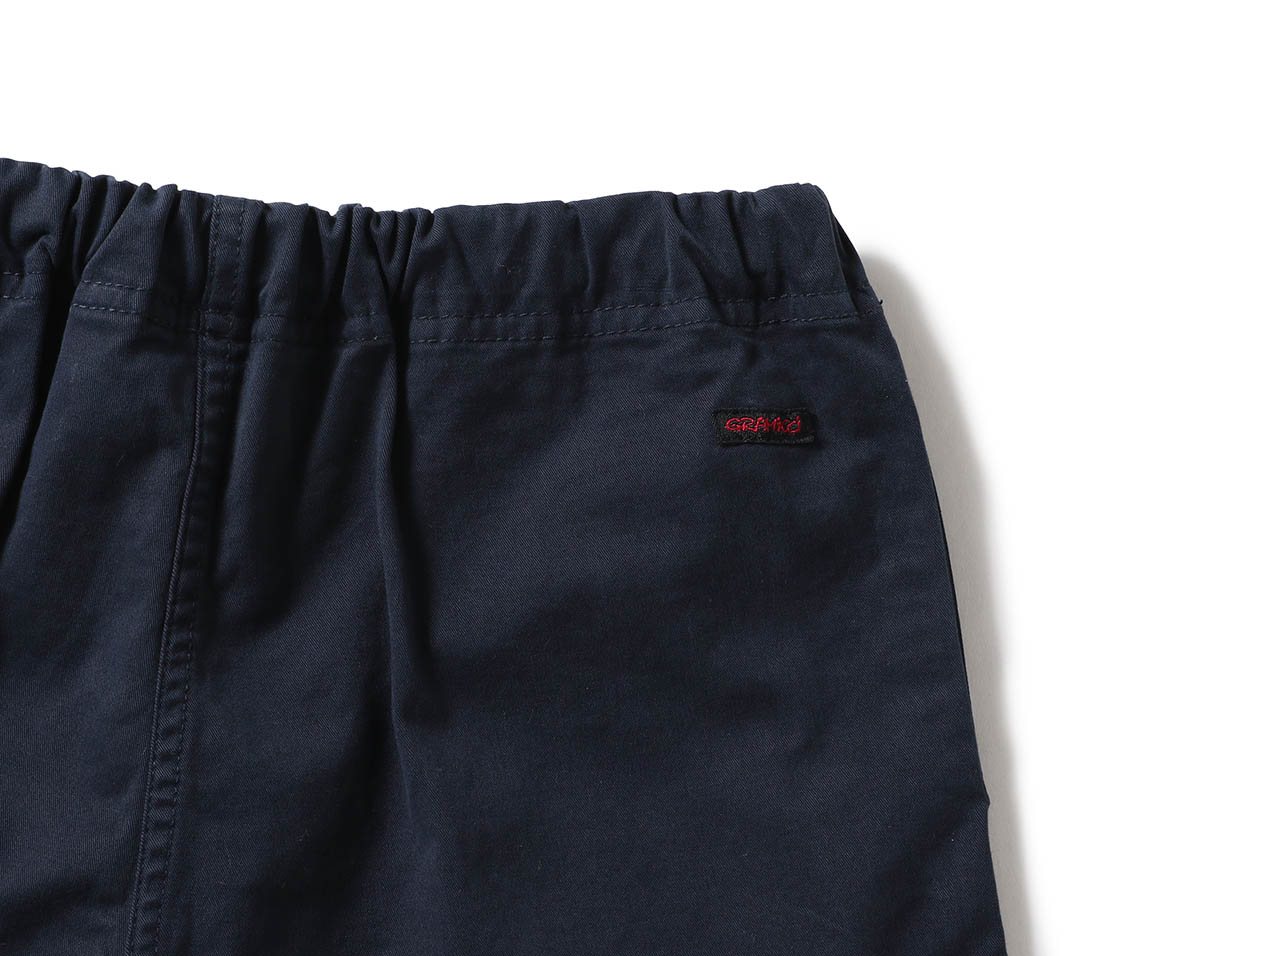 【40%OFF】ITH×GRAMICCI KIDS G-SHORTS - ith-0146